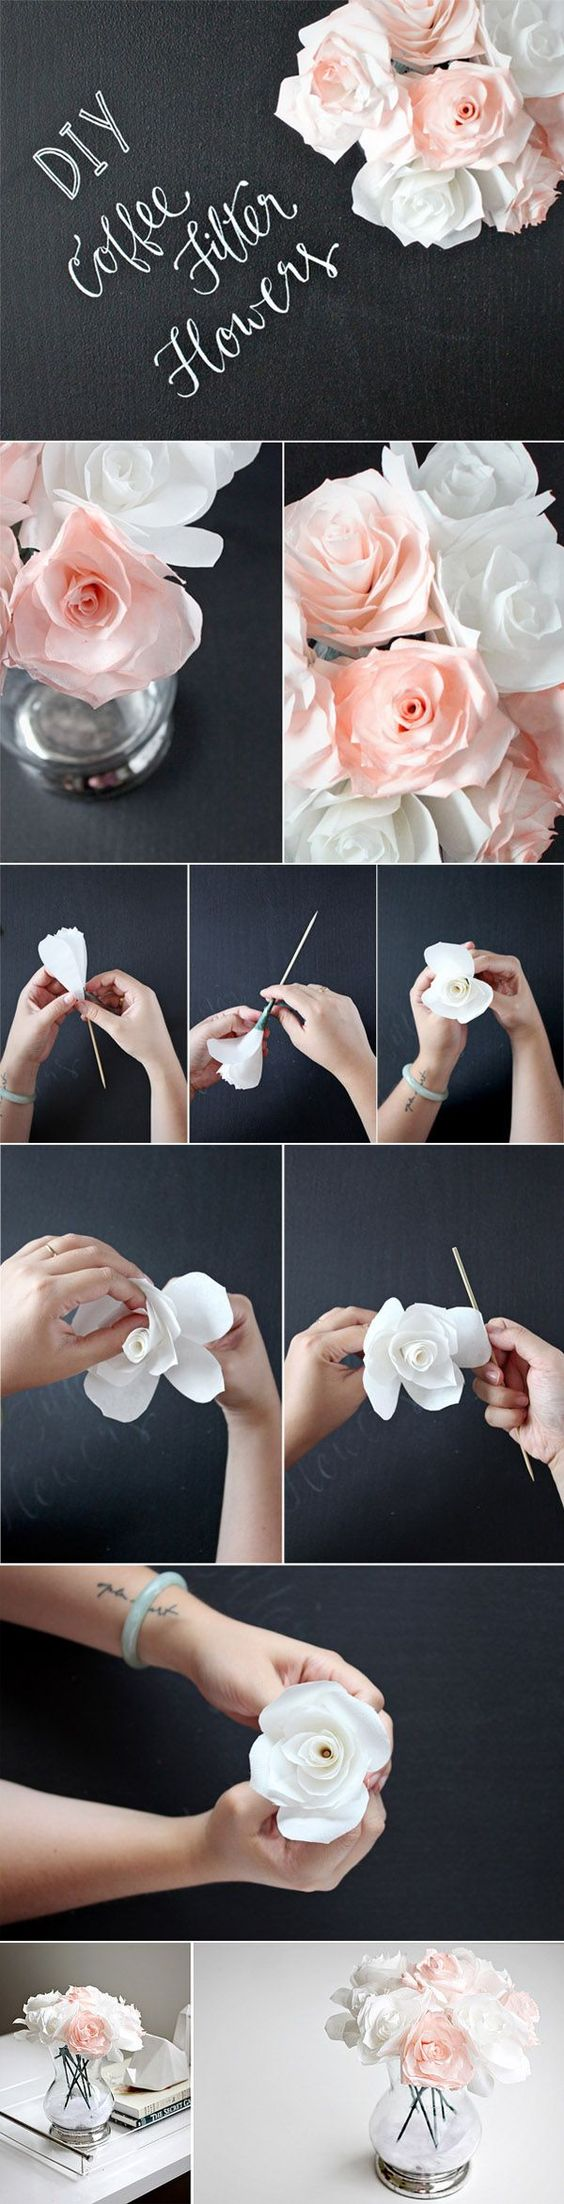 diy wedding centerpieces ideas with coffee filter flowers